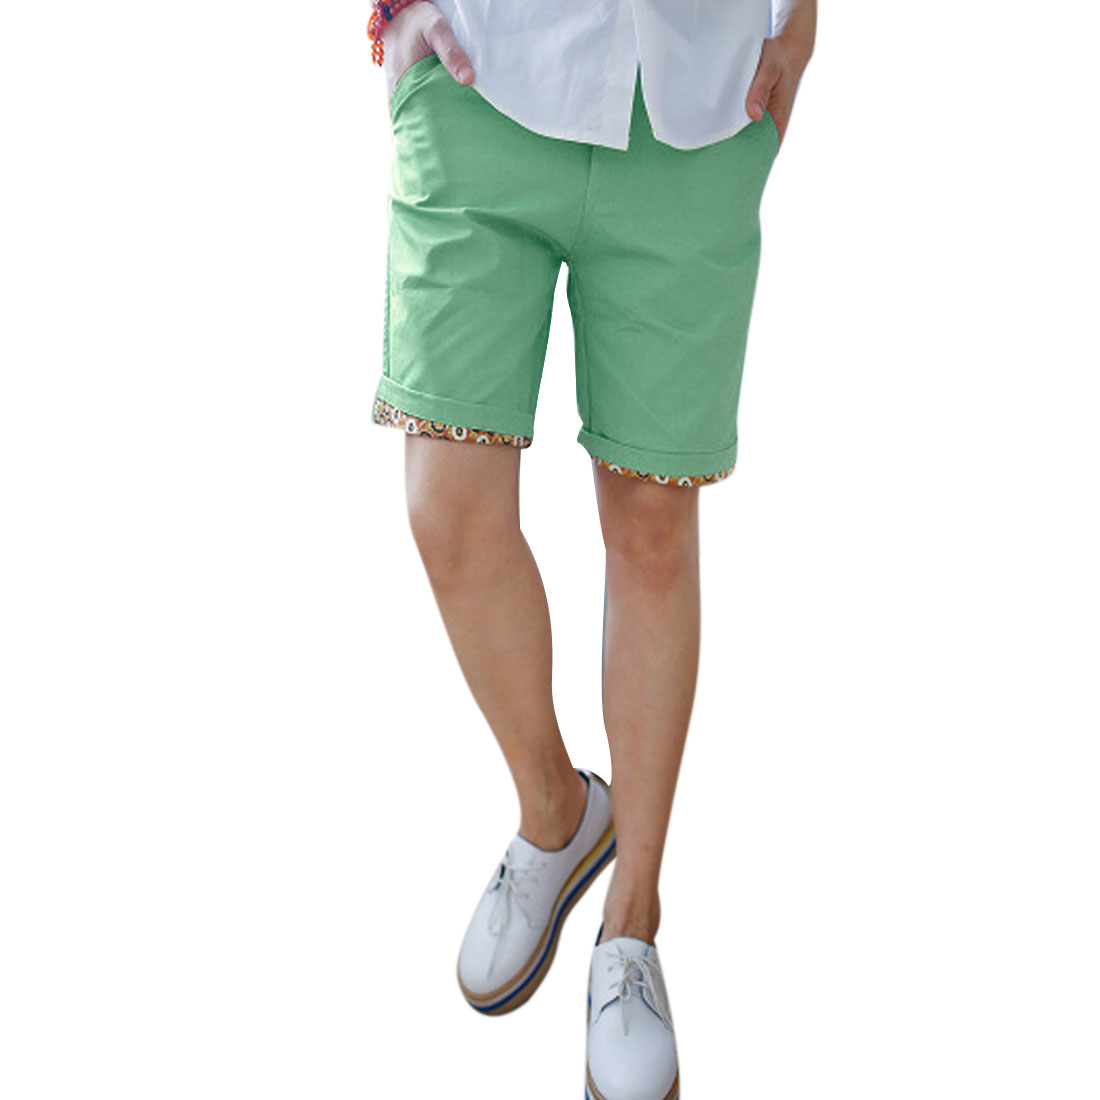 Man Stylish Slant Pockets Casual Floral Details Shorts Light Green W33